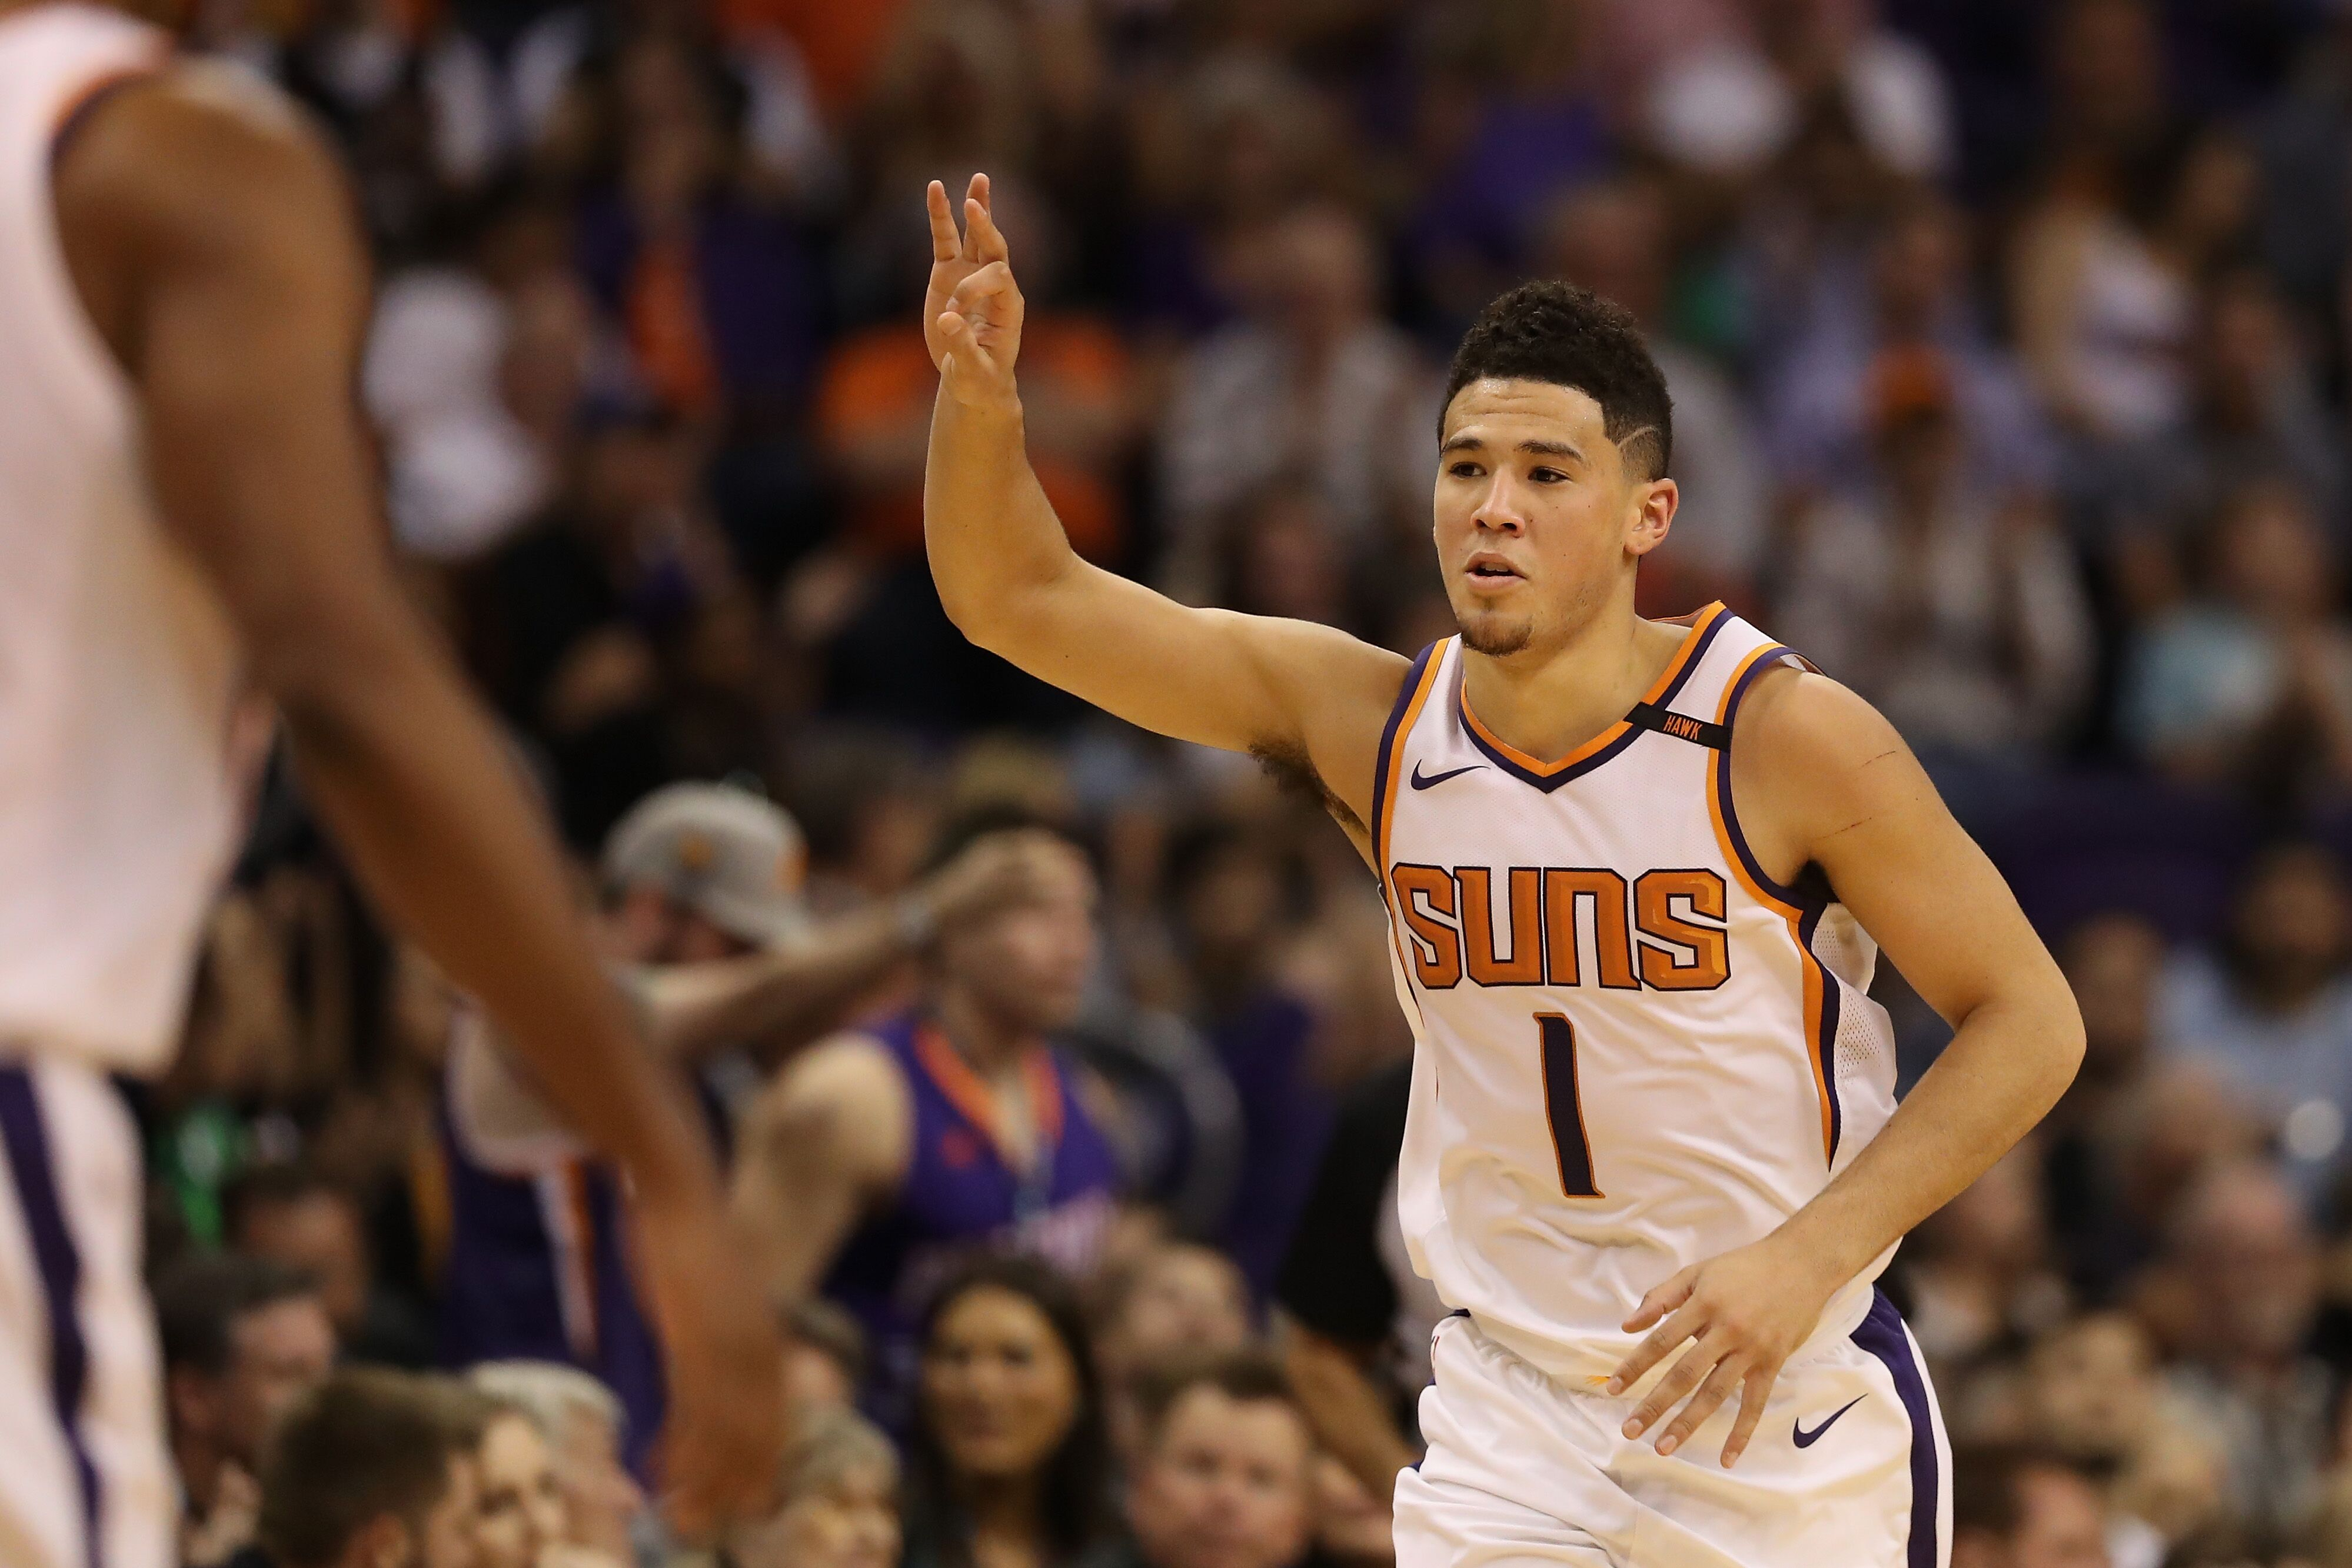 f3bf5eac7 Devin Booker  5 early signs he s making the leap for the Suns in 2017-18